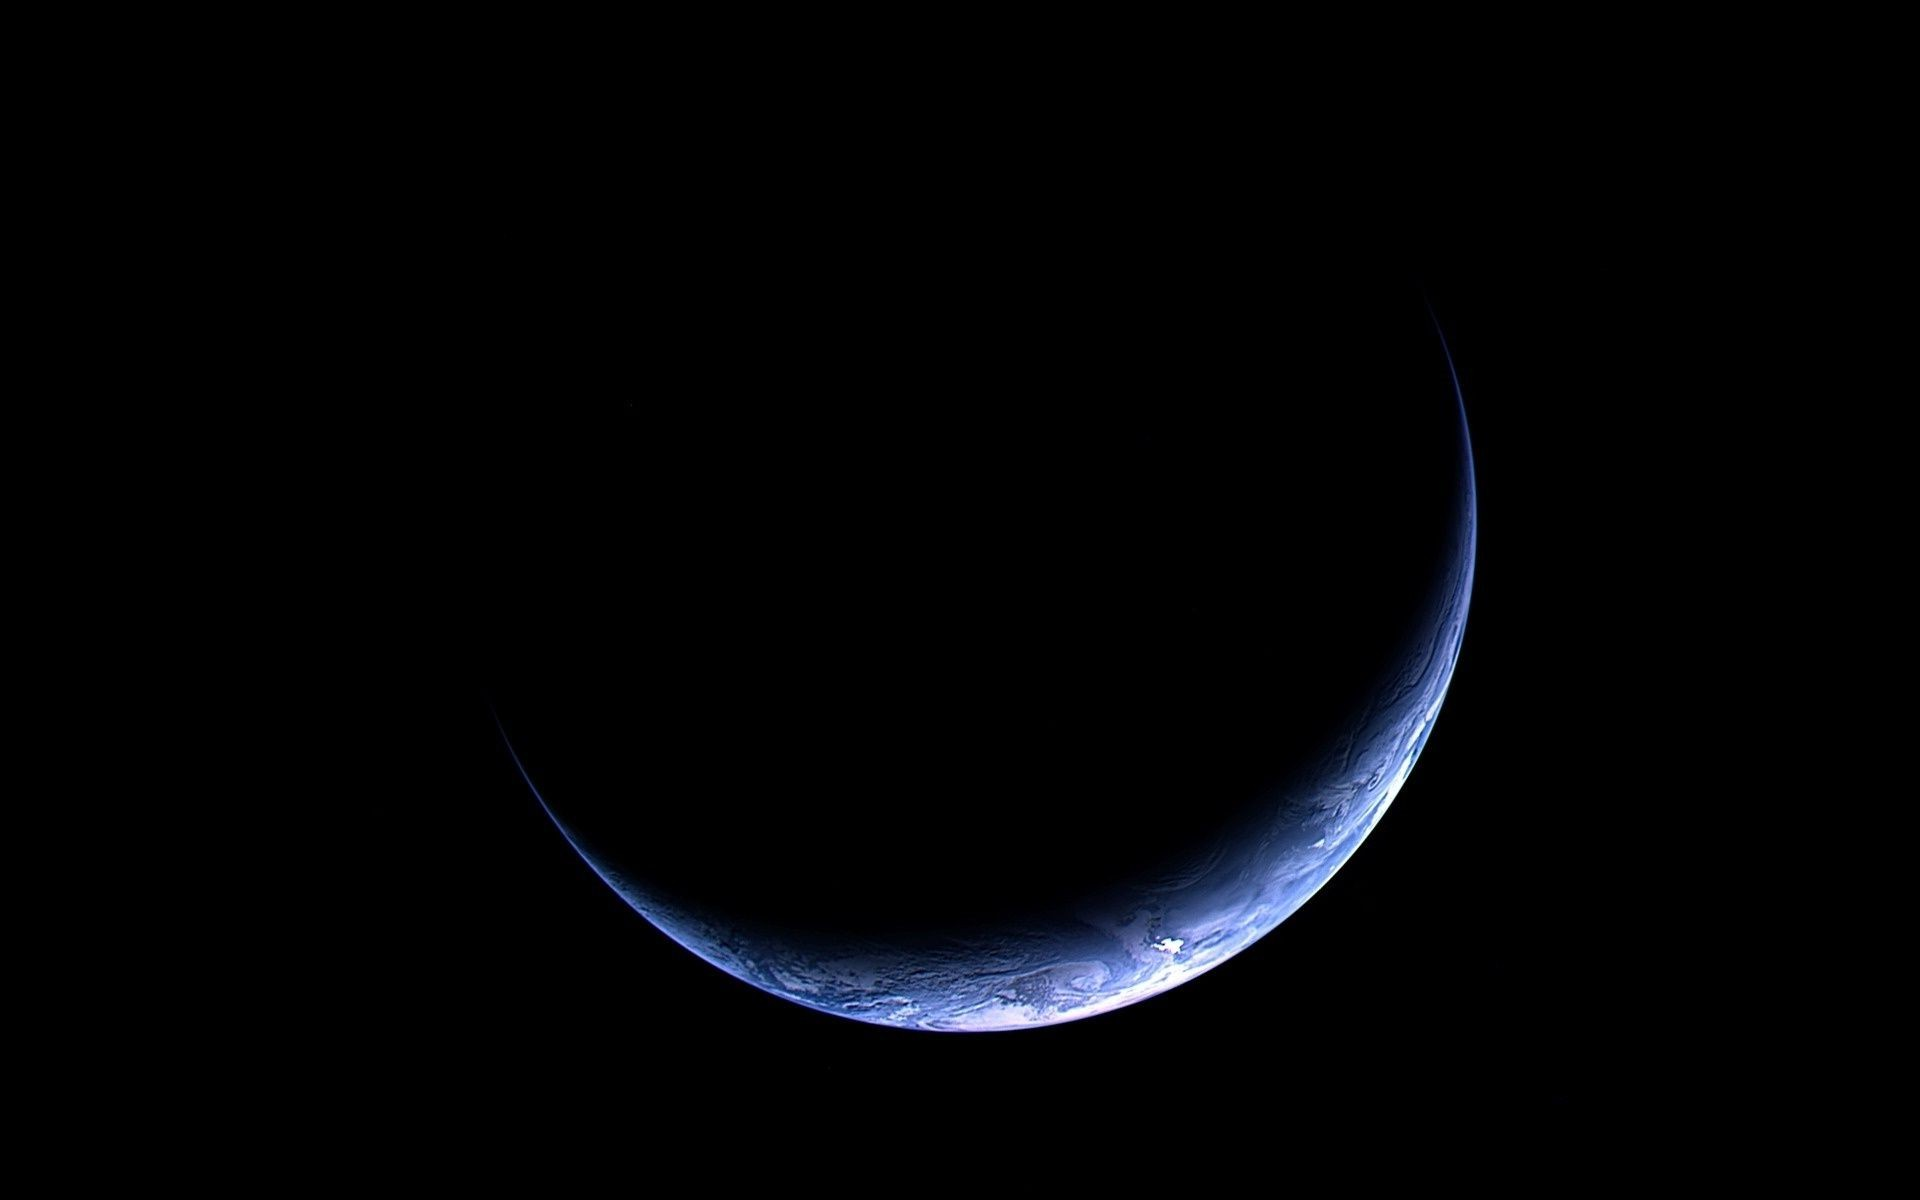 Wallpaper Planet Earth Black Background Space Iphone Wallpapers For